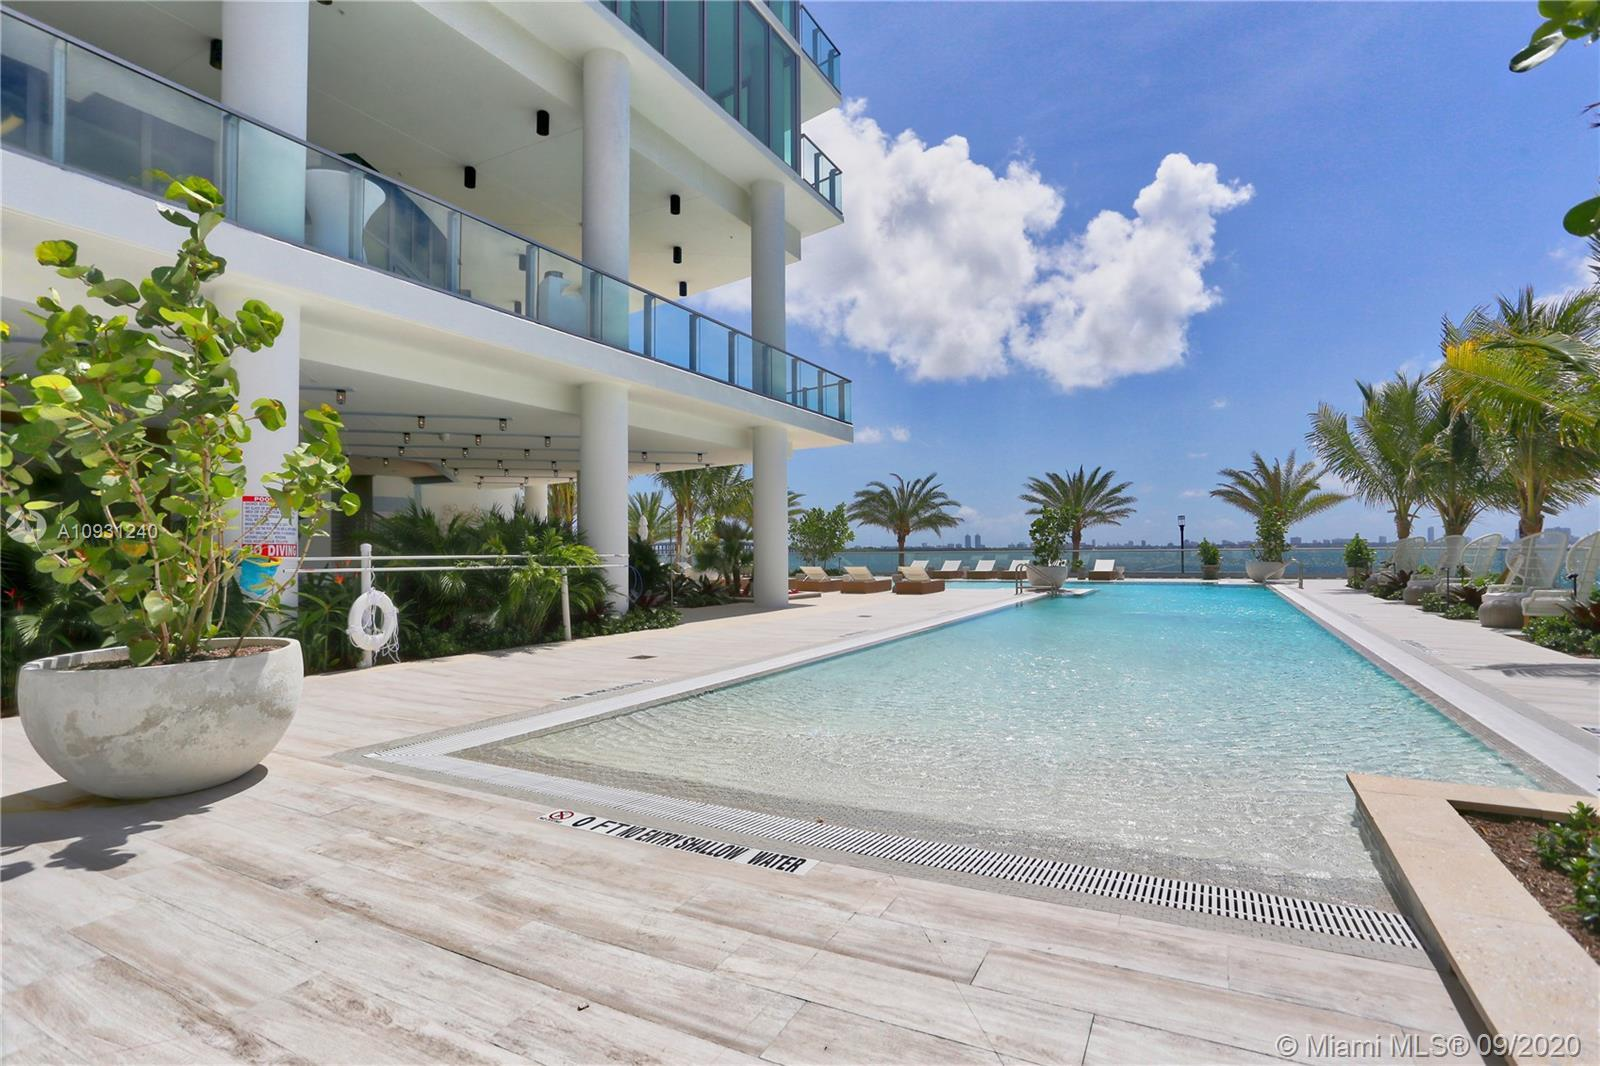 Bayfront high-rise 3BD/4BA + DEN with White porcelain floors and stunning views of Biscayne Bay, Mia